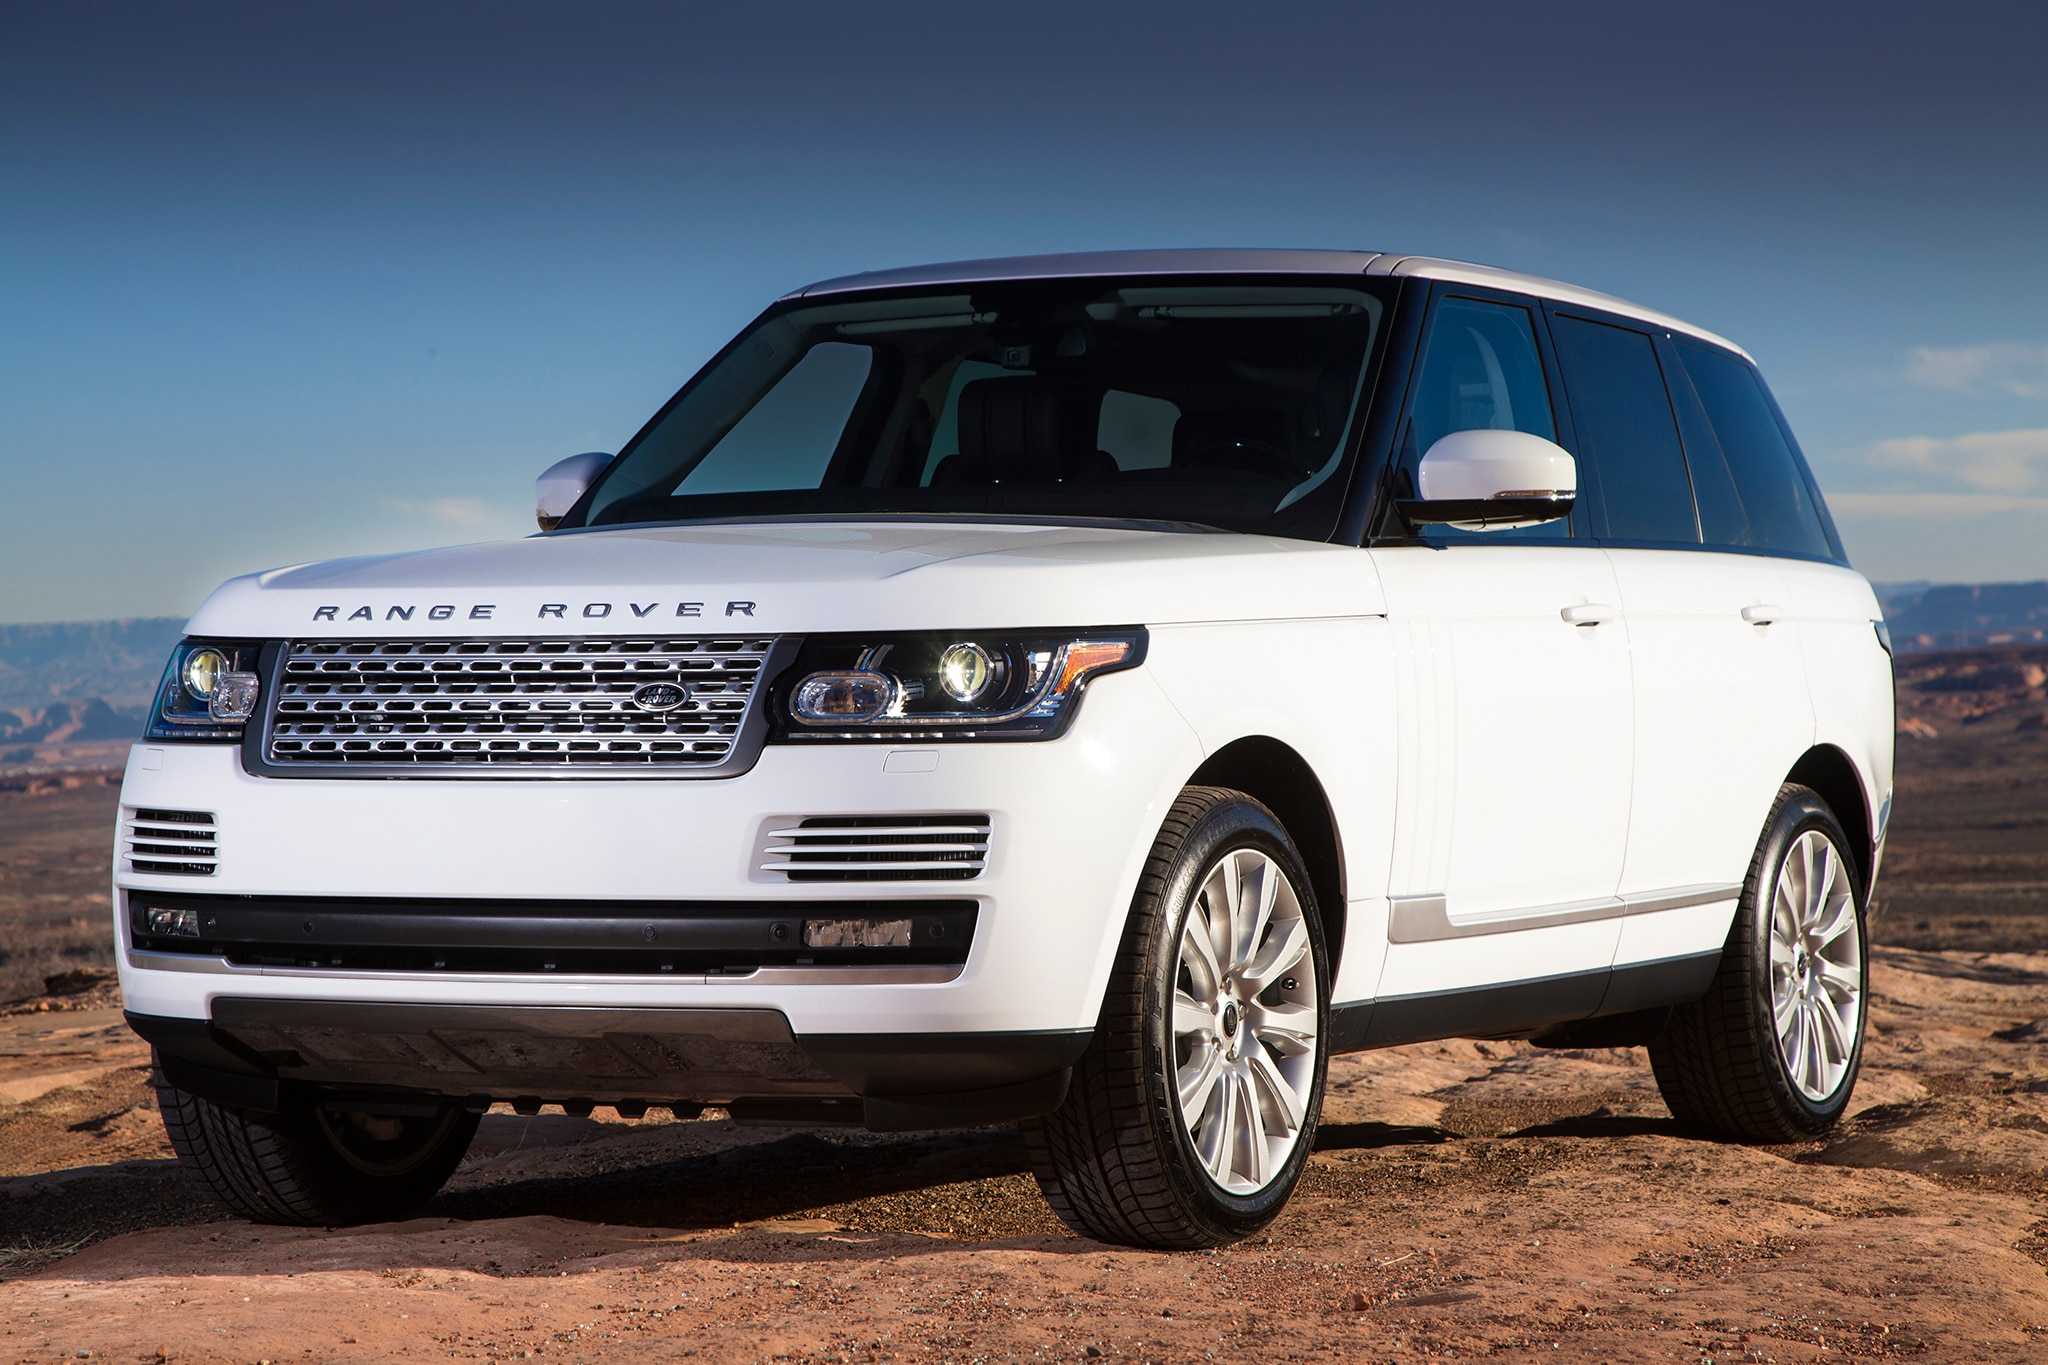 2013 2016 range rover sport models recalled for door latch. Black Bedroom Furniture Sets. Home Design Ideas